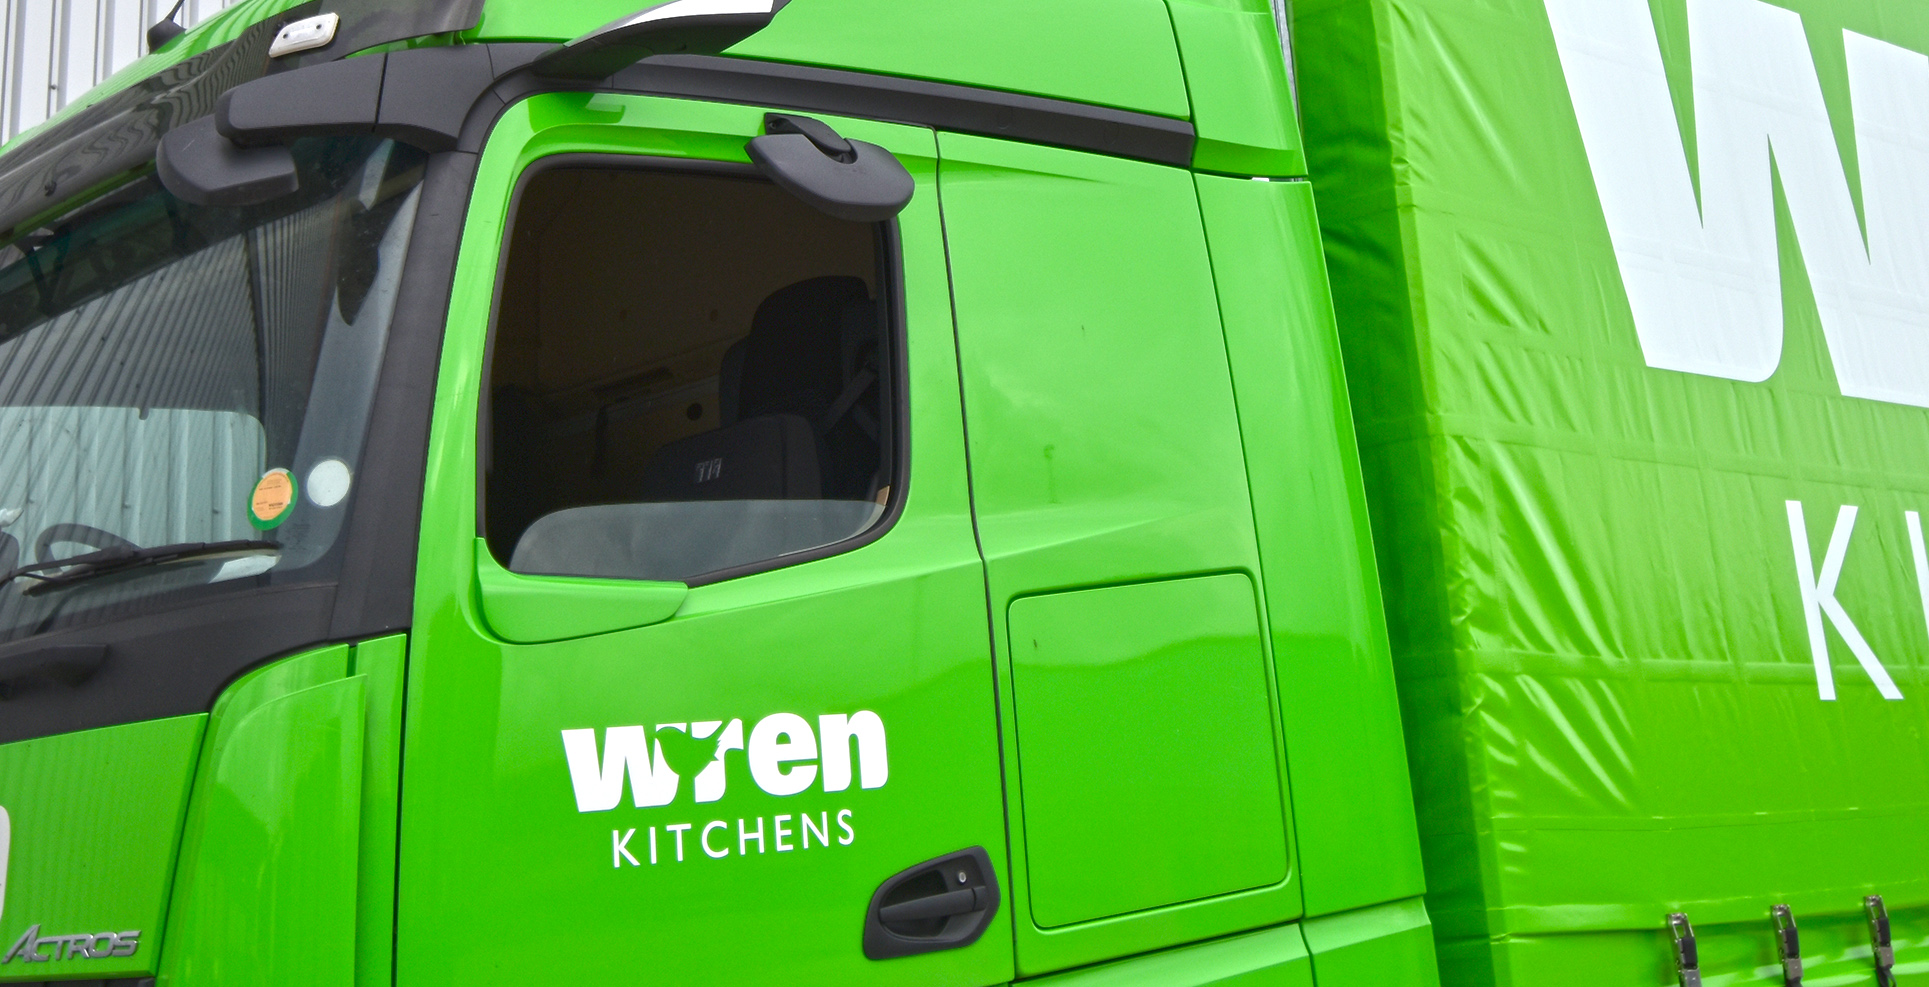 Hub - Direct Vision Standard DVS - Mercedes Actros MirrorCam cyclist safety Wren Kitchens